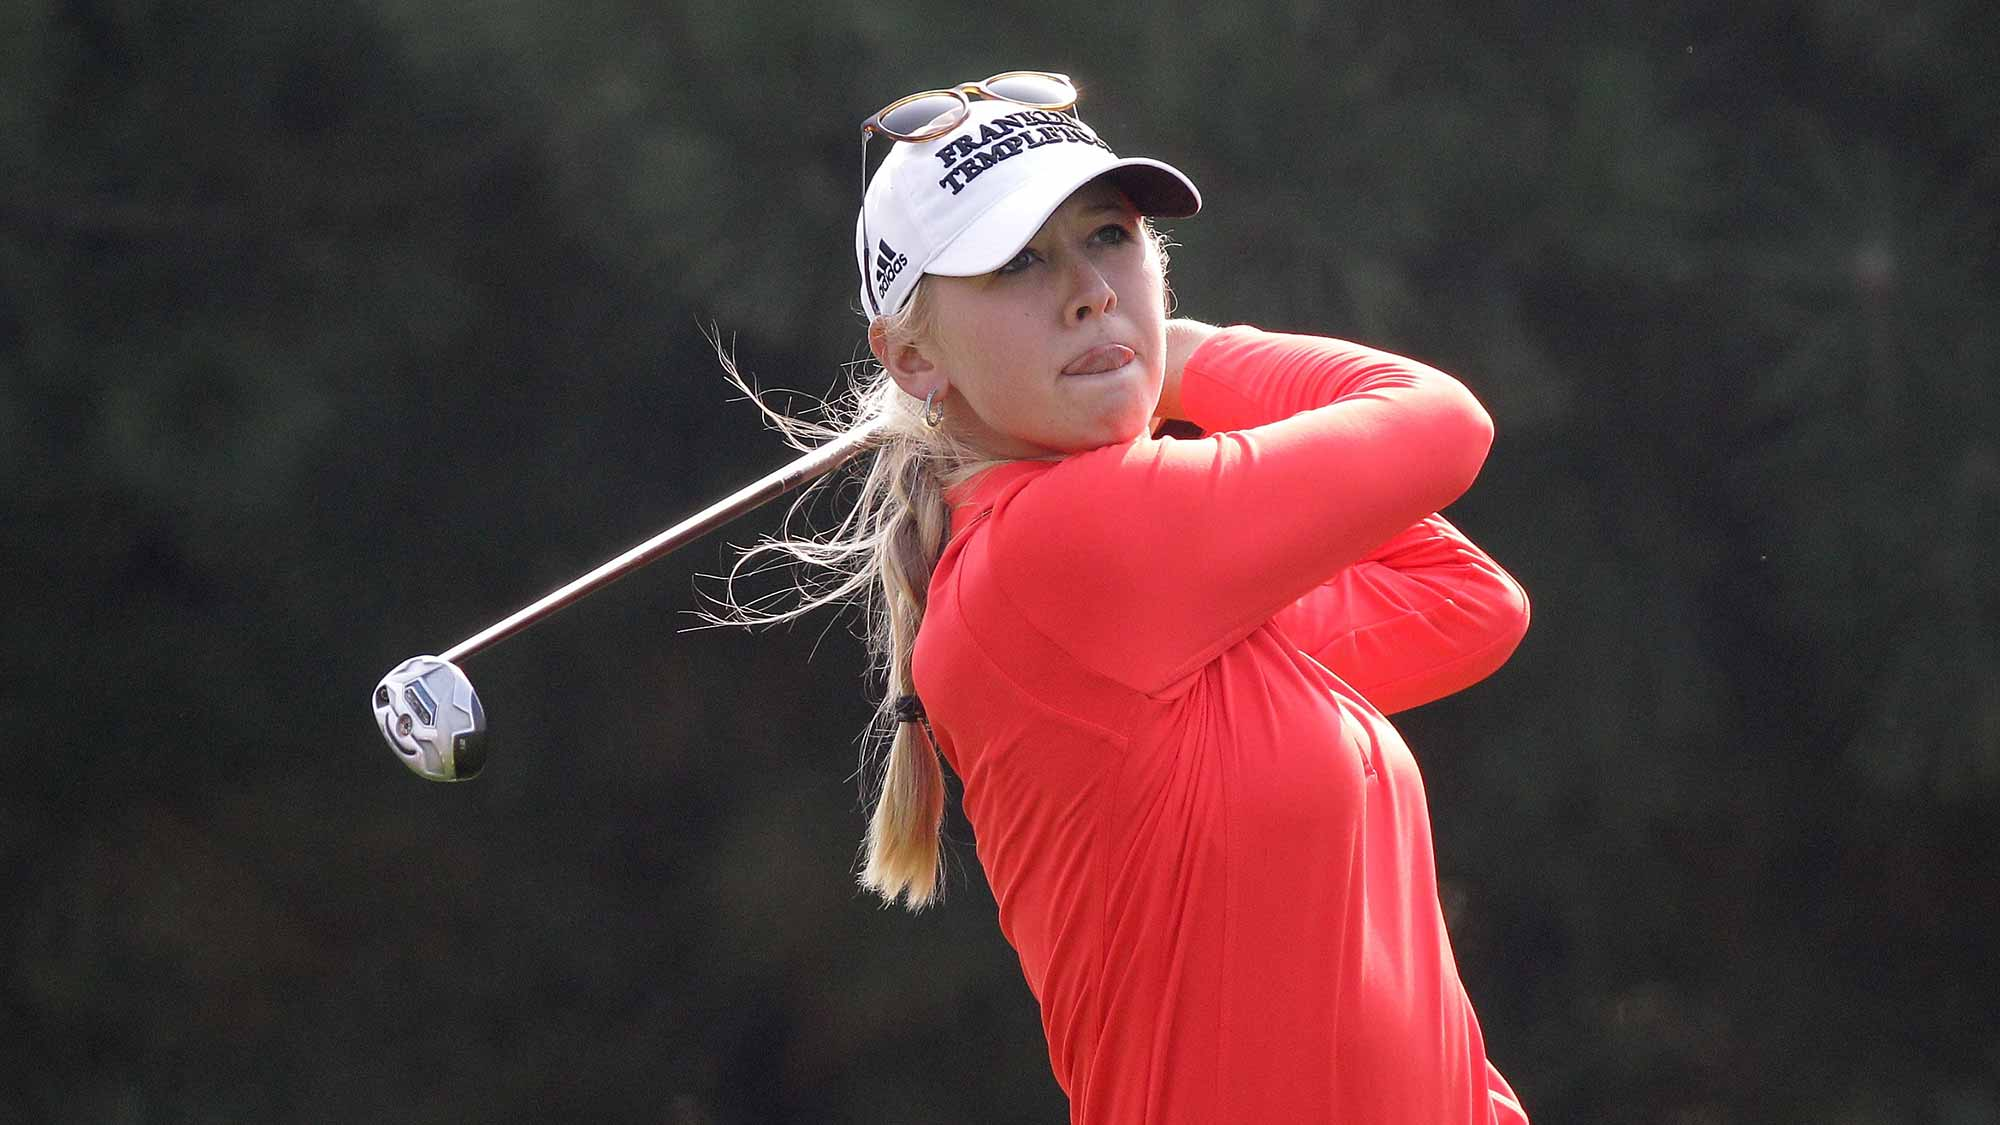 Jessica Korda of United States plays a tee shot on the 4th hole during round two of the LPGA KEB Hana Bank Championship